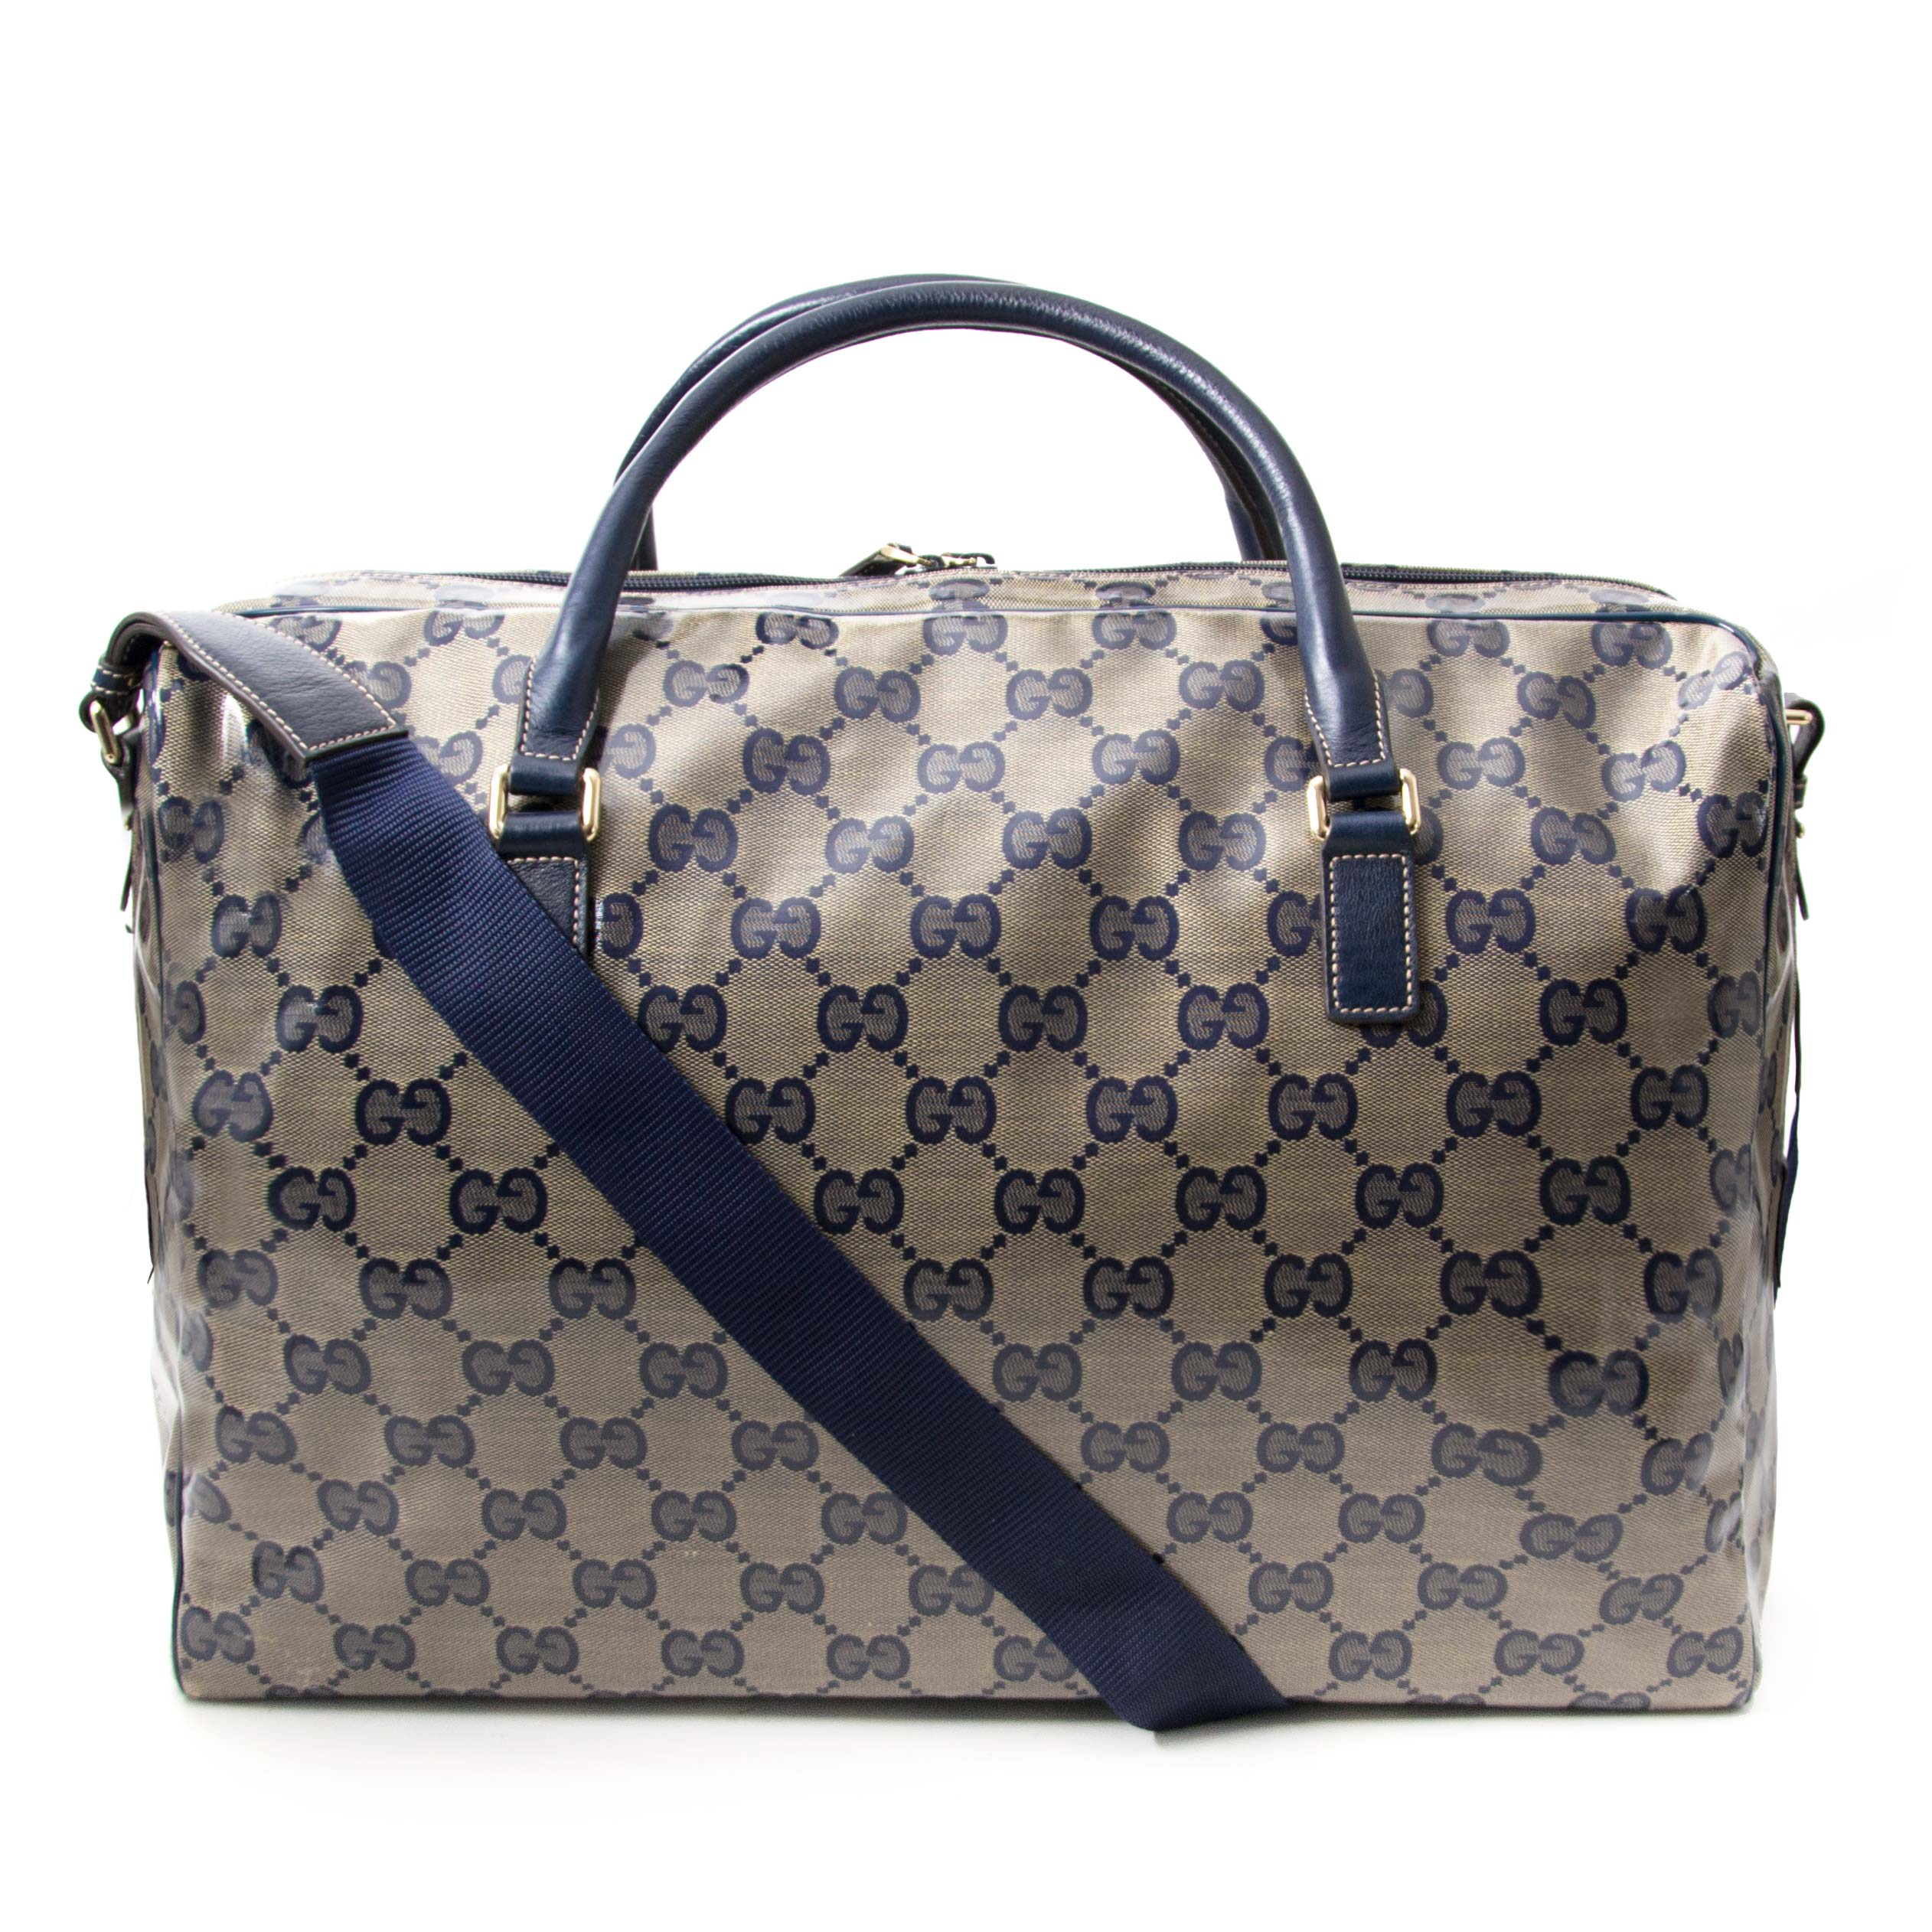 Buy and sell your authentic Gucci GG Supreme Coated Monogram Canvas Travel Bag for the best price